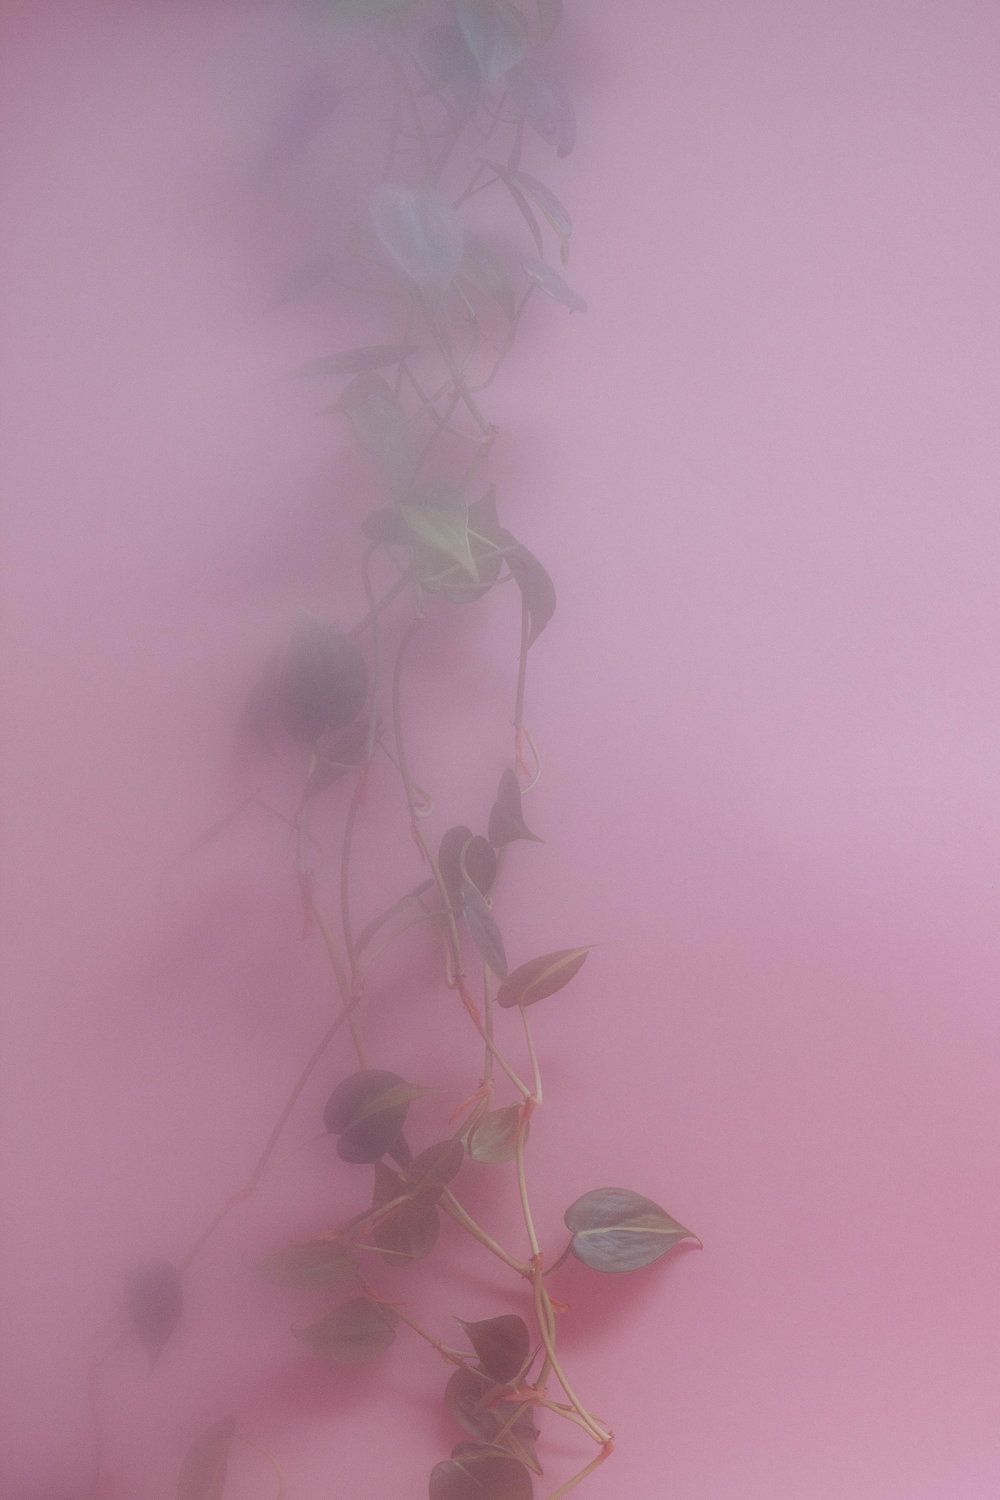 Ethereal Wallpapers Posted By Ryan Simpson